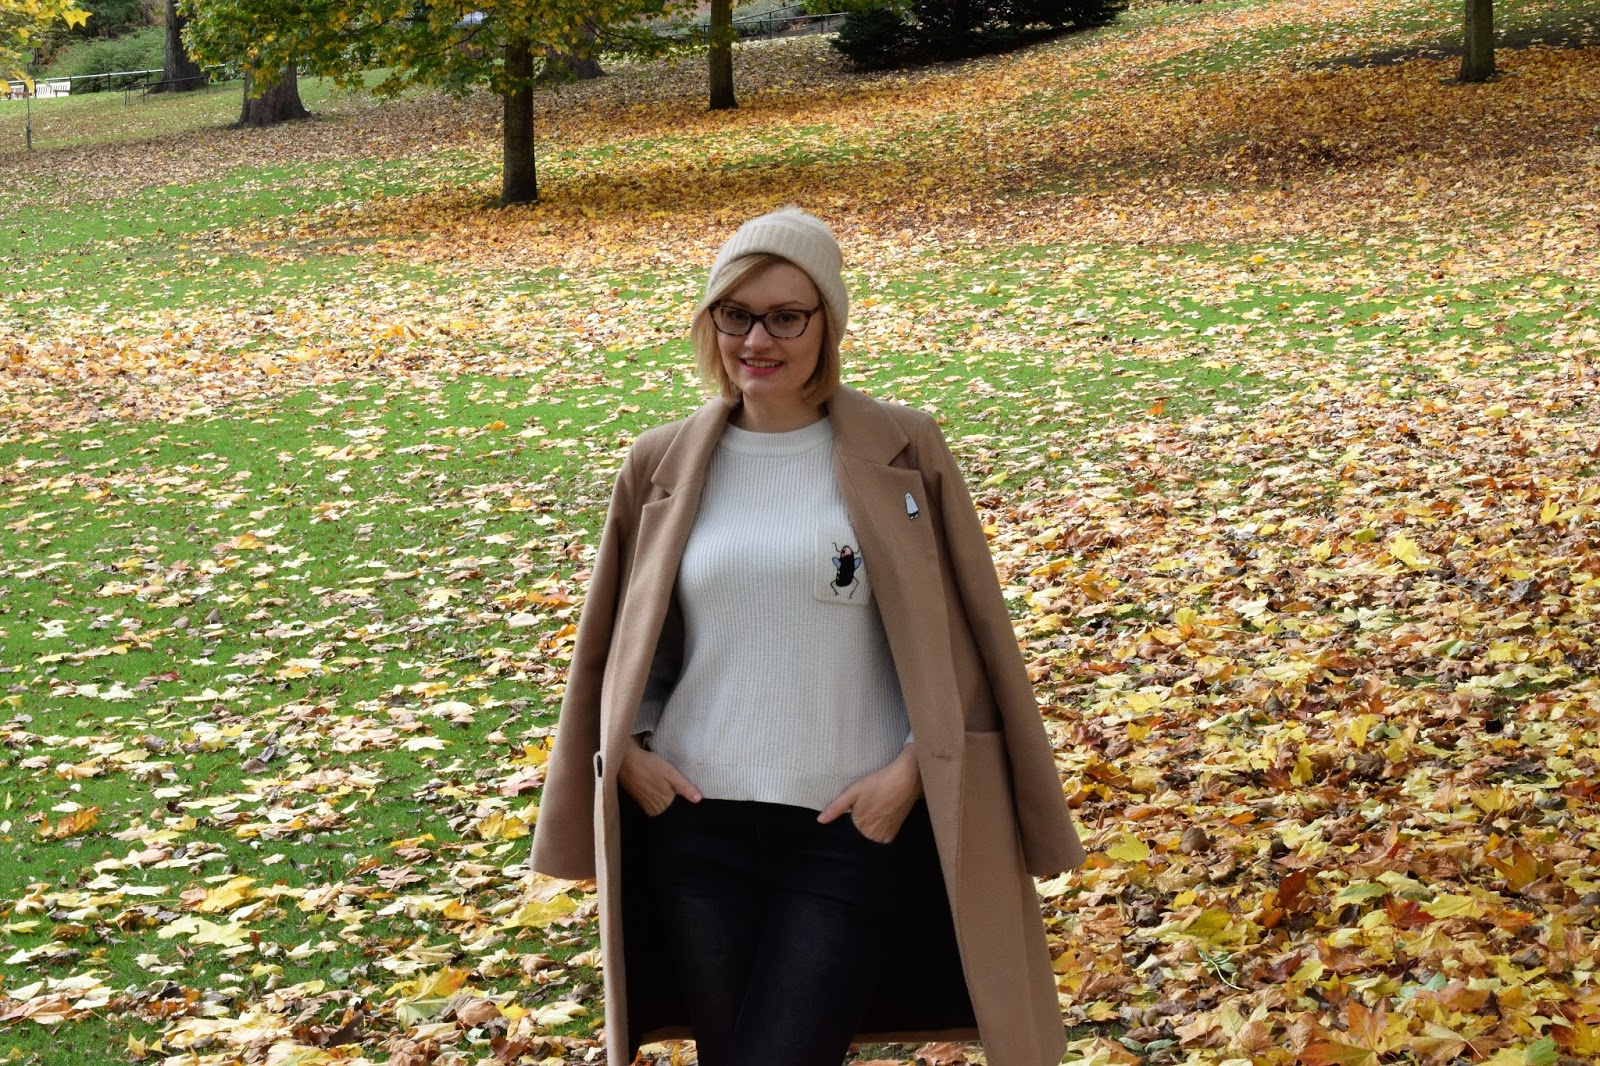 Scottish winter style trend, tartan scarf, The Whitepepper, The Sad Ghost Club, social media friendships, issues with ethical fashion and blogging, Edinburgh blogger photoshoot, simple chic scottish style, UK style blogger, camel coat, how to layer for winter in Scotland,